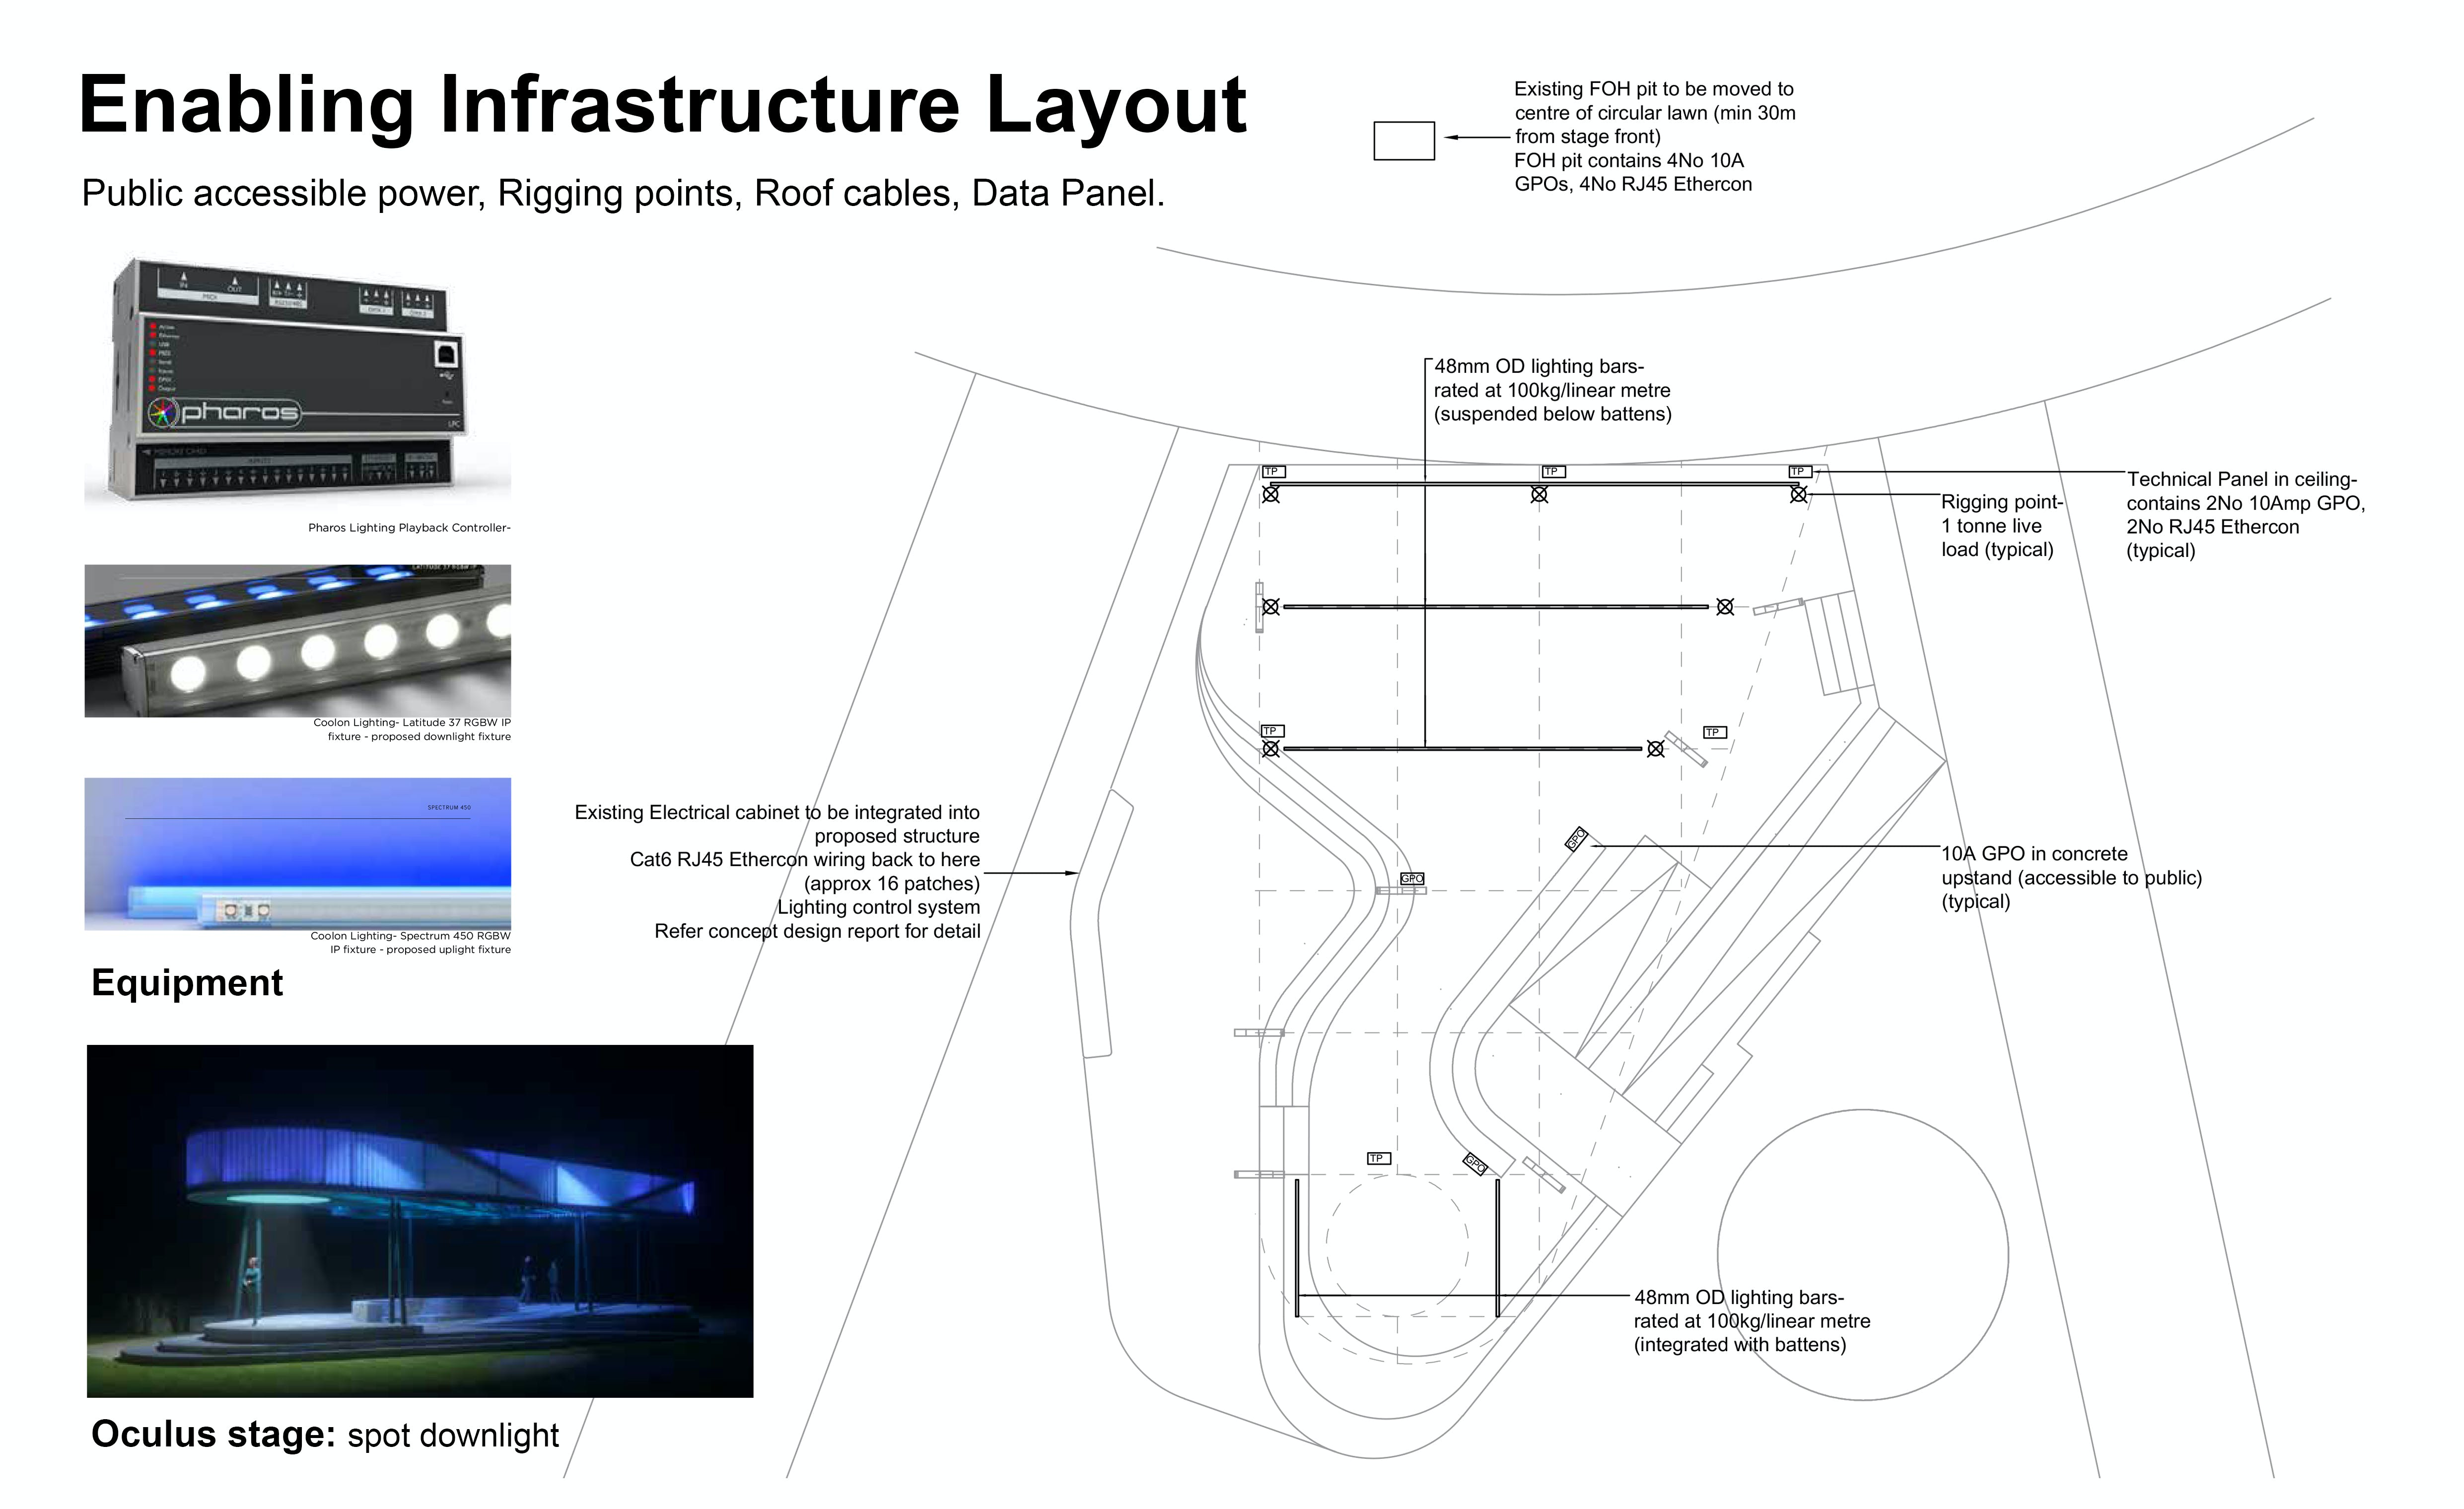 Enabling infrastructure layout